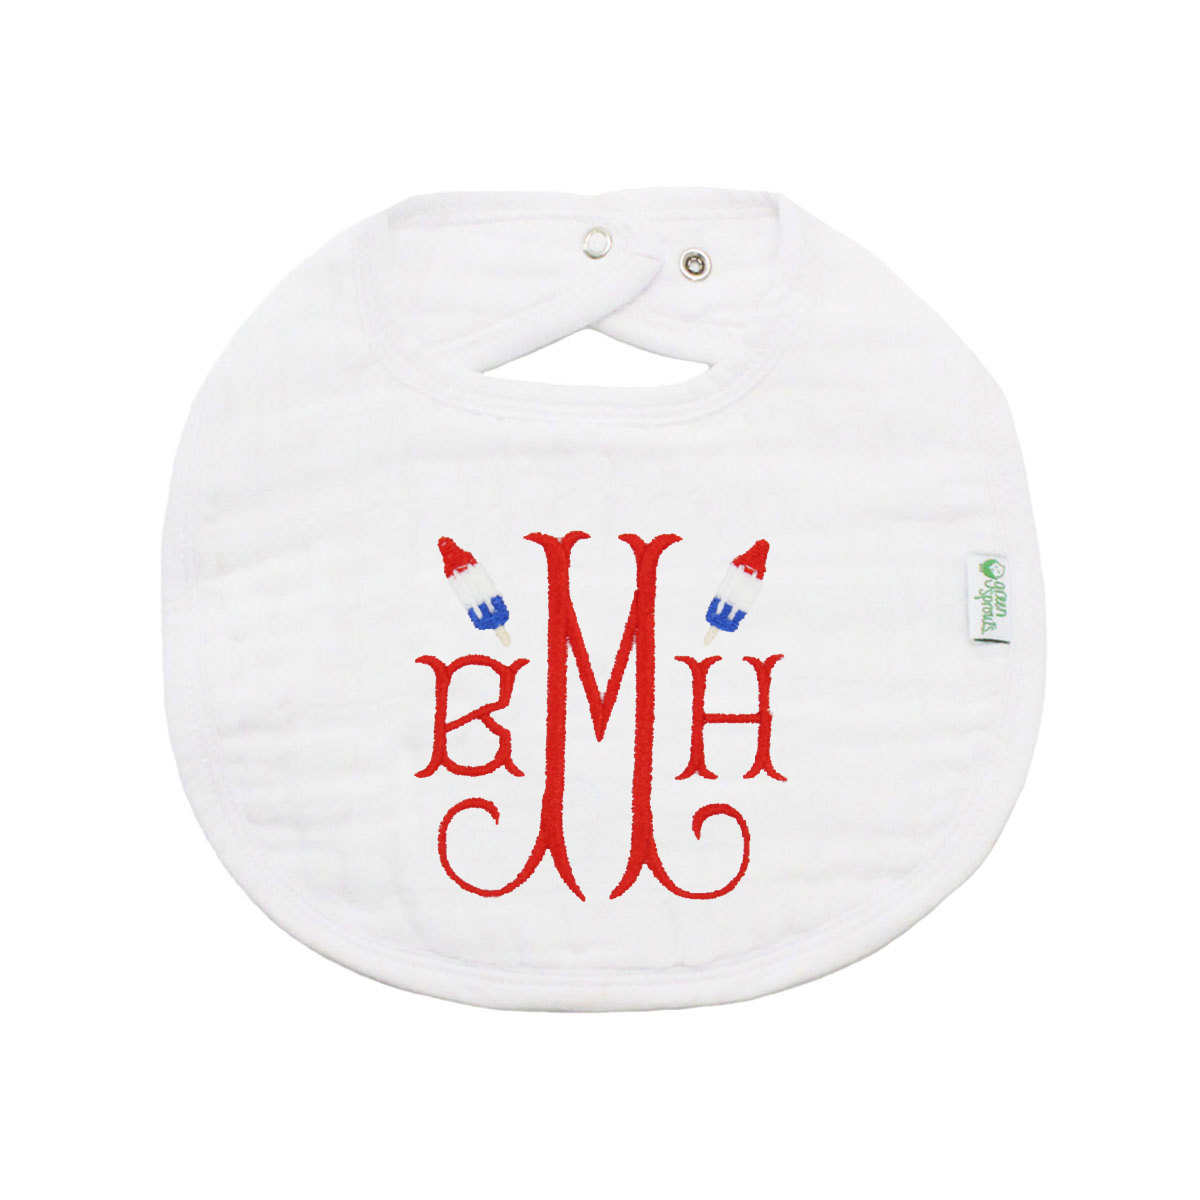 The Tot Monogram Bib in White with Popsicles Embroidery